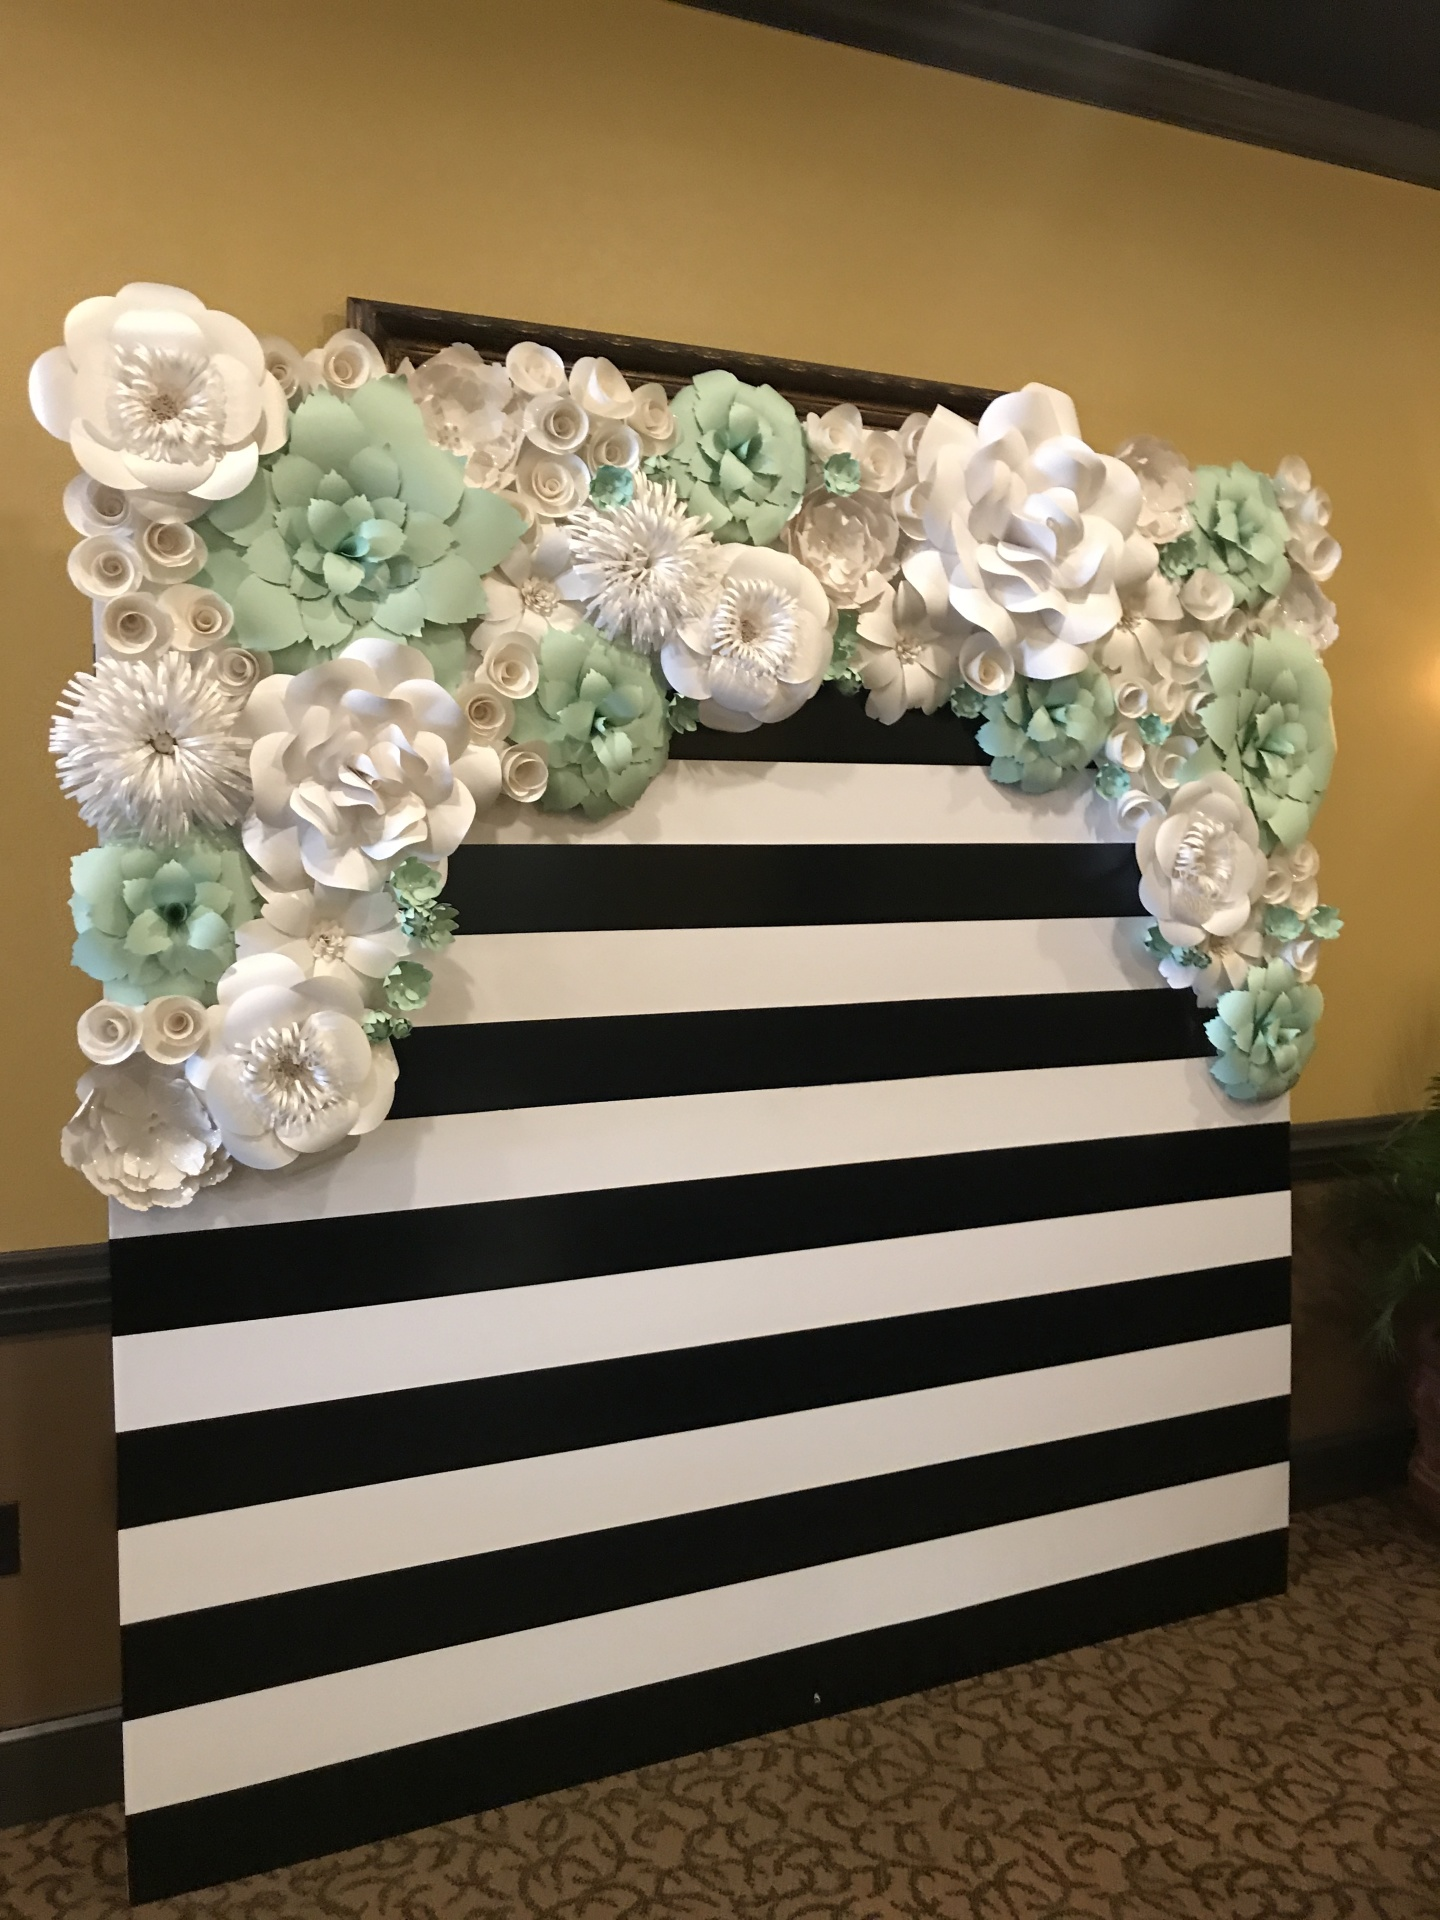 kate spade inspired. striped wall. baby shower backdrop. bridal shower backdrop. bridal shower. birthday party. graduation party. paper flower rental. houston paper flowers. Personalized backdrop. Paper flower wall. paper flower wall rental.